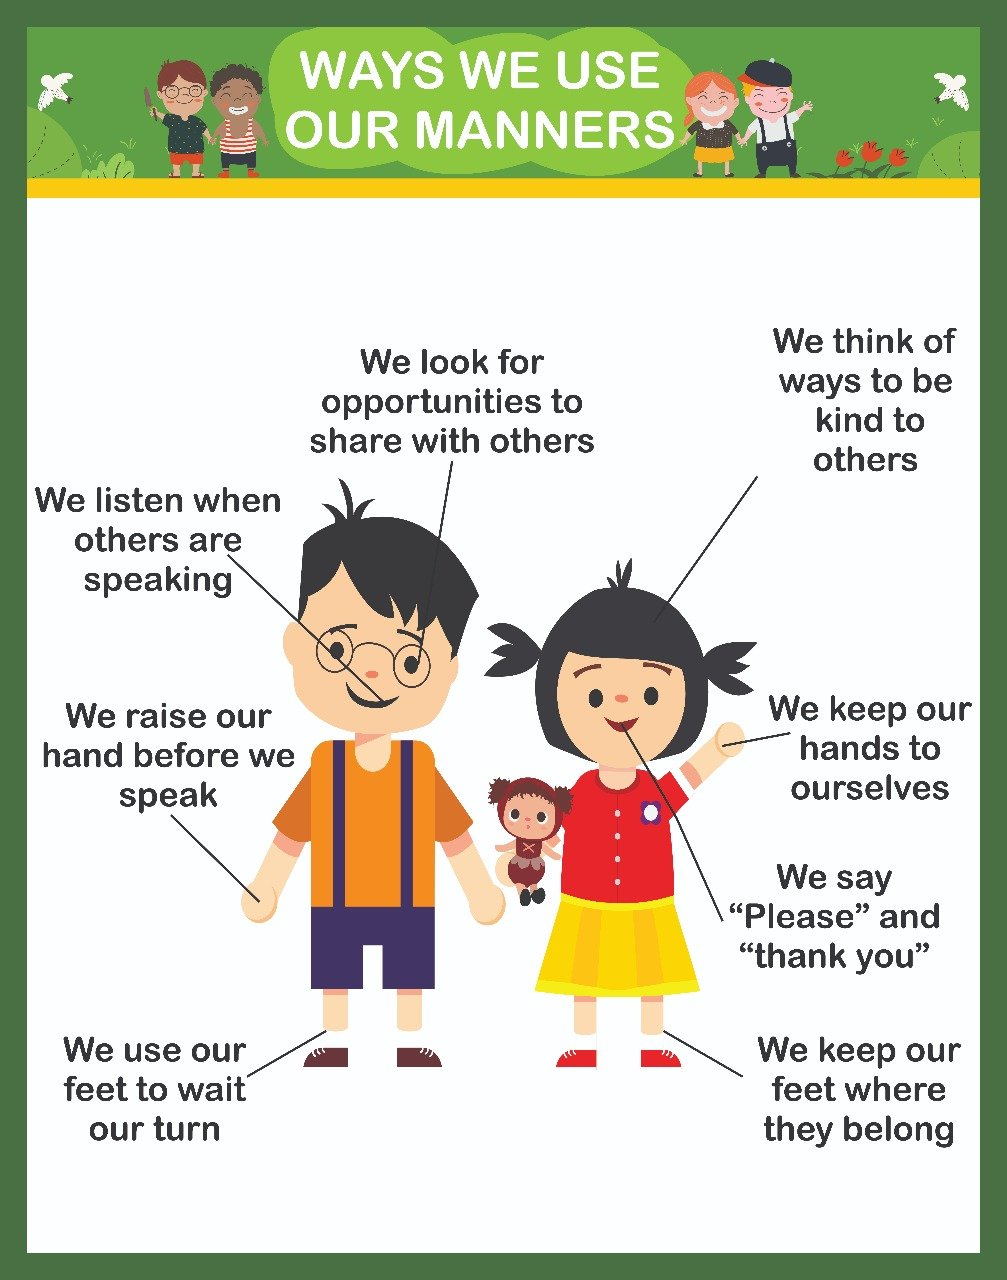 Paper Plane Design Good Manners Educational Charts for Kids Home and School  A3 Size.  Amazon.in  Home   Kitchen 3a86741da